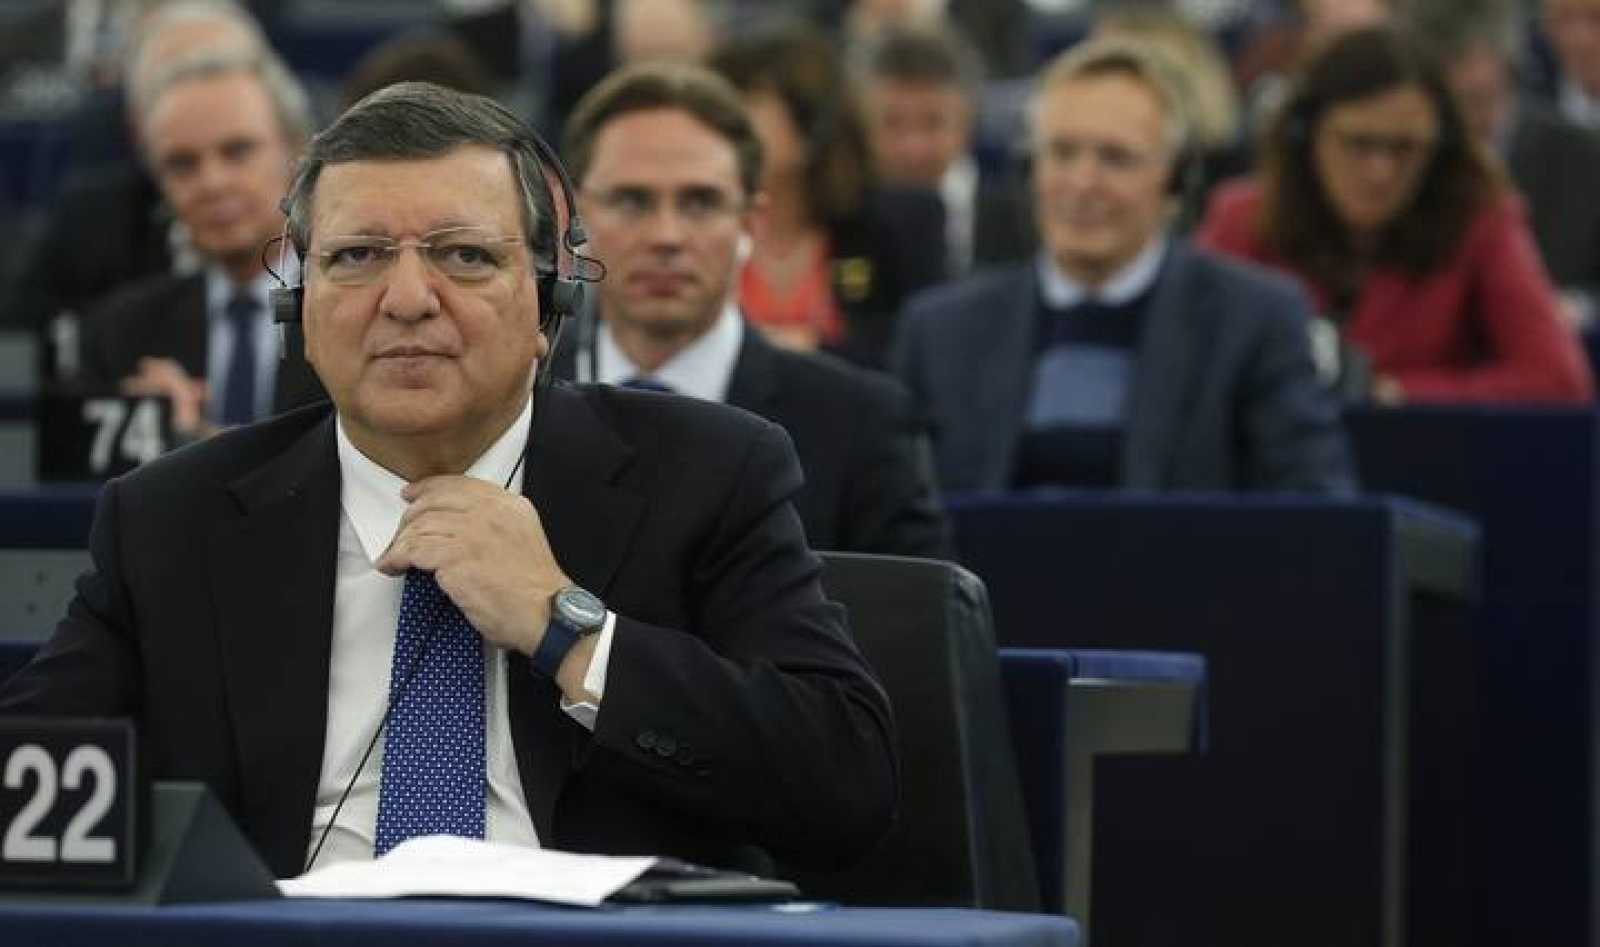 Outgoing European Commission President Barroso attends the review of the Barroso II Commission at the EU Parliament in Strasbourg